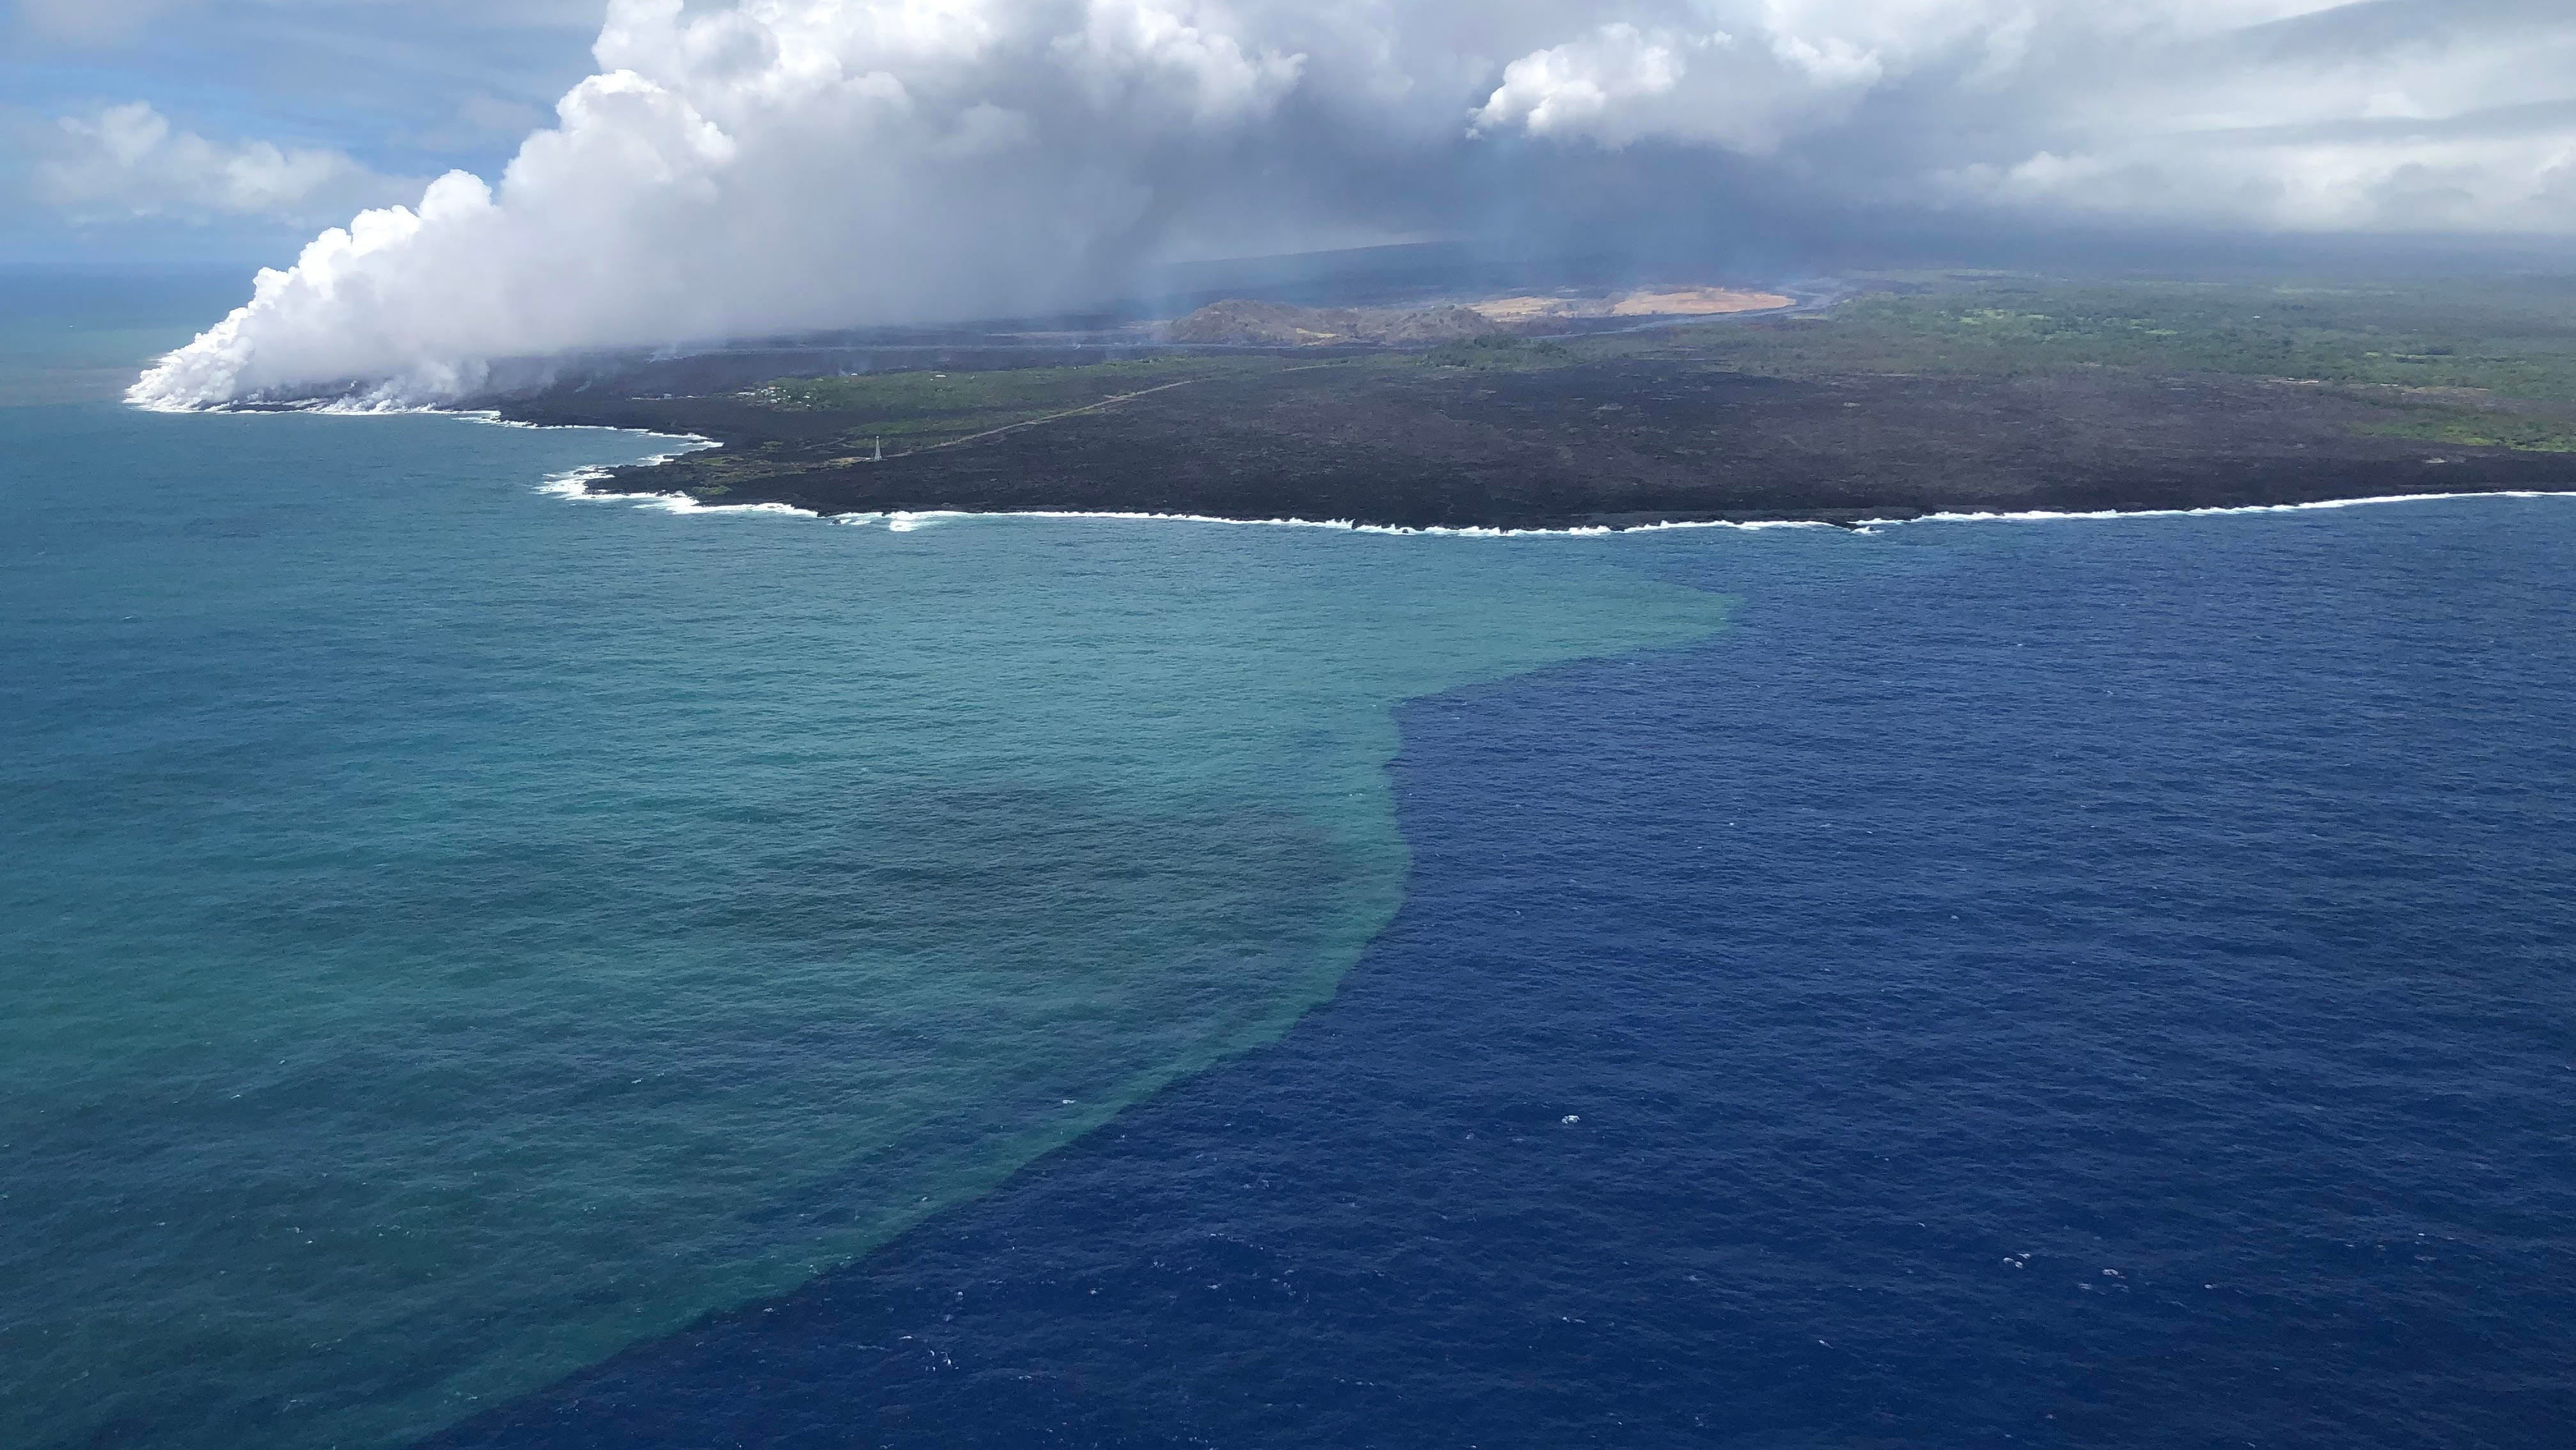 Hawaii's Kilauea Volcano Unexpectedly Triggered A Gigantic Phytoplankton Bloom